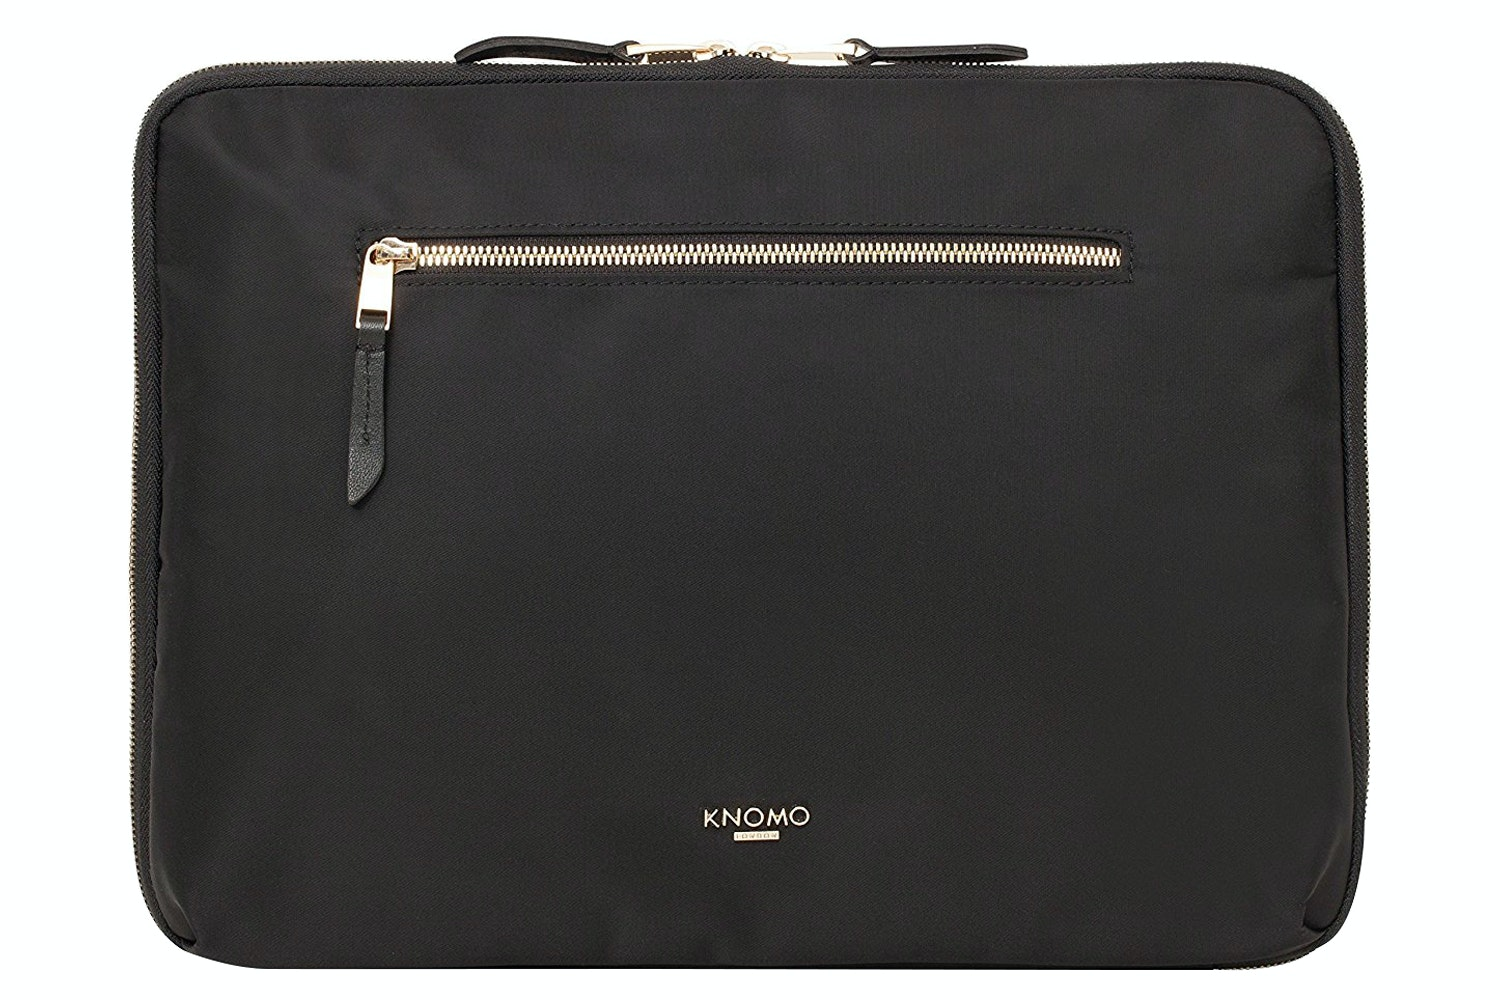 "Knomo Mayfair 13"" Knomad Organizer 